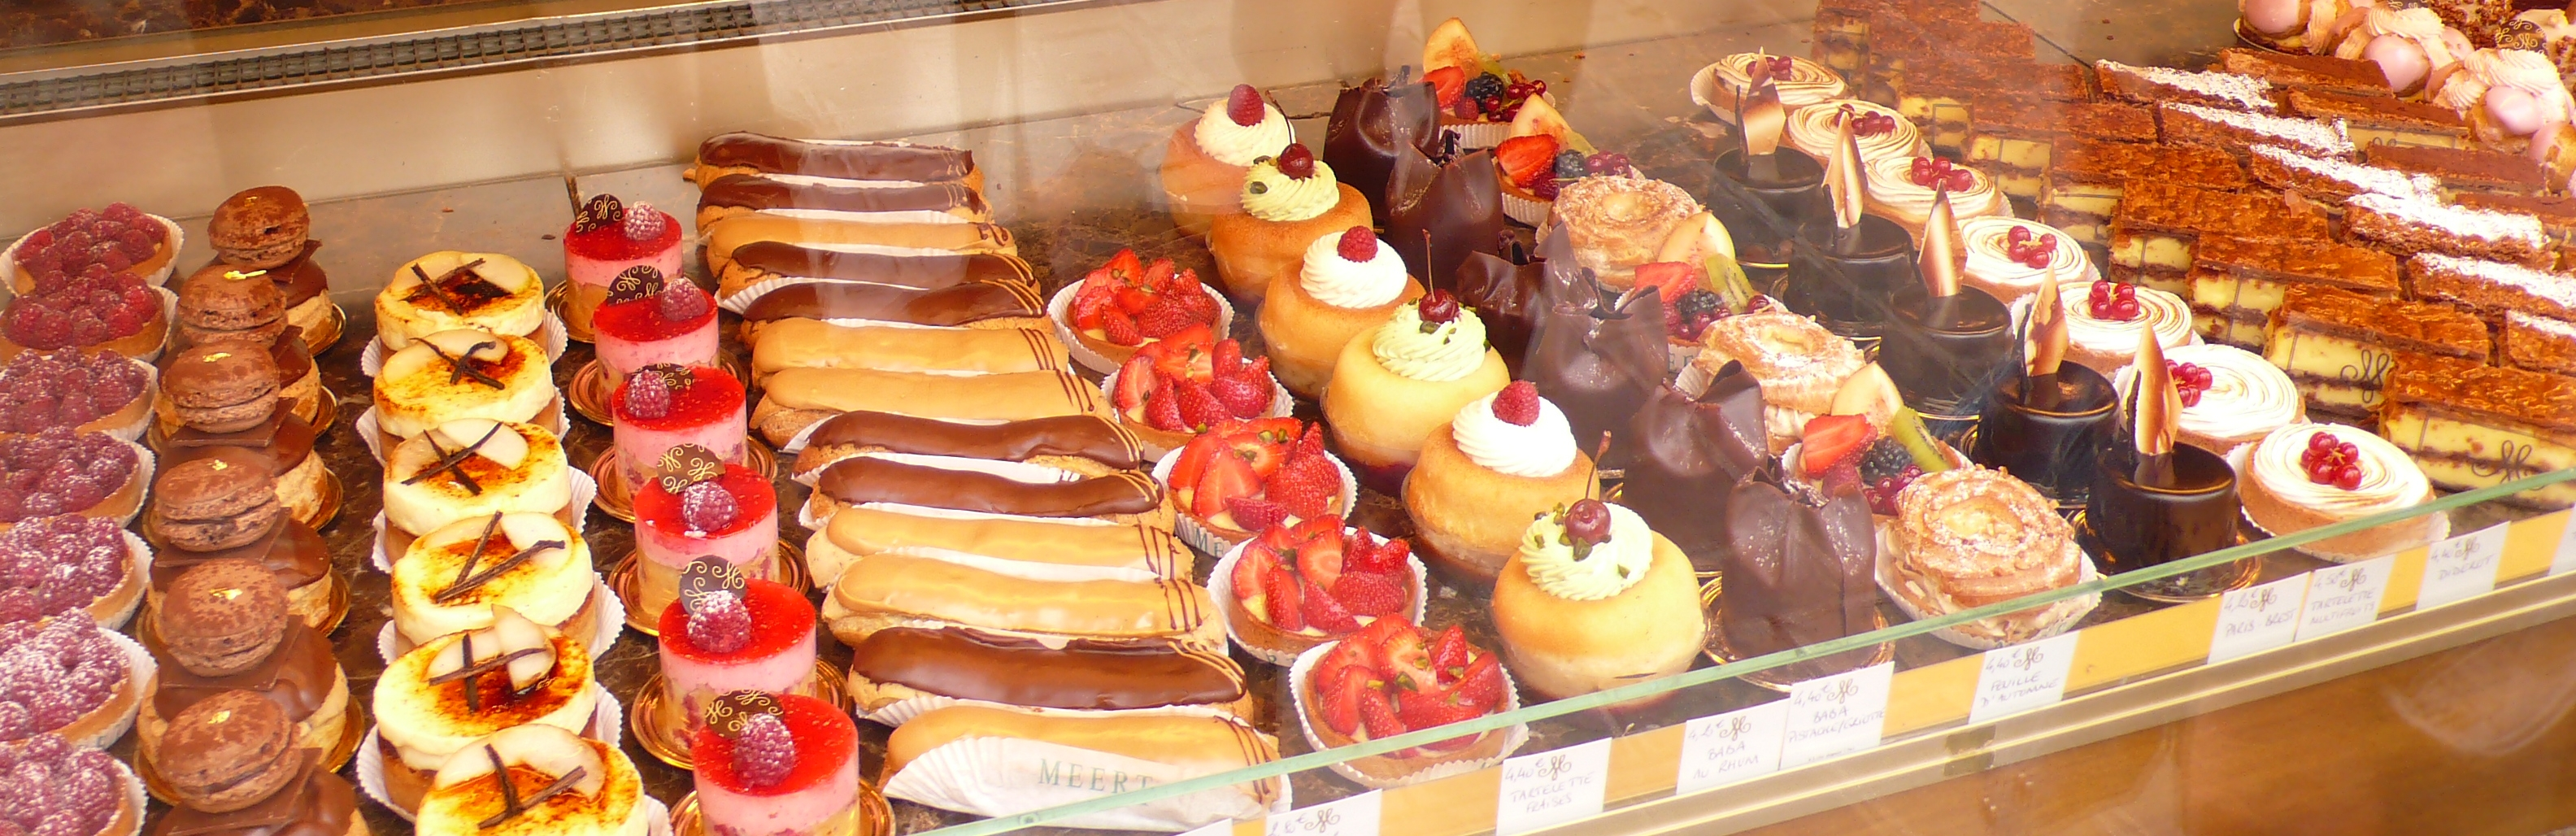 An assortment of pastries and cakes in a pâtisserie